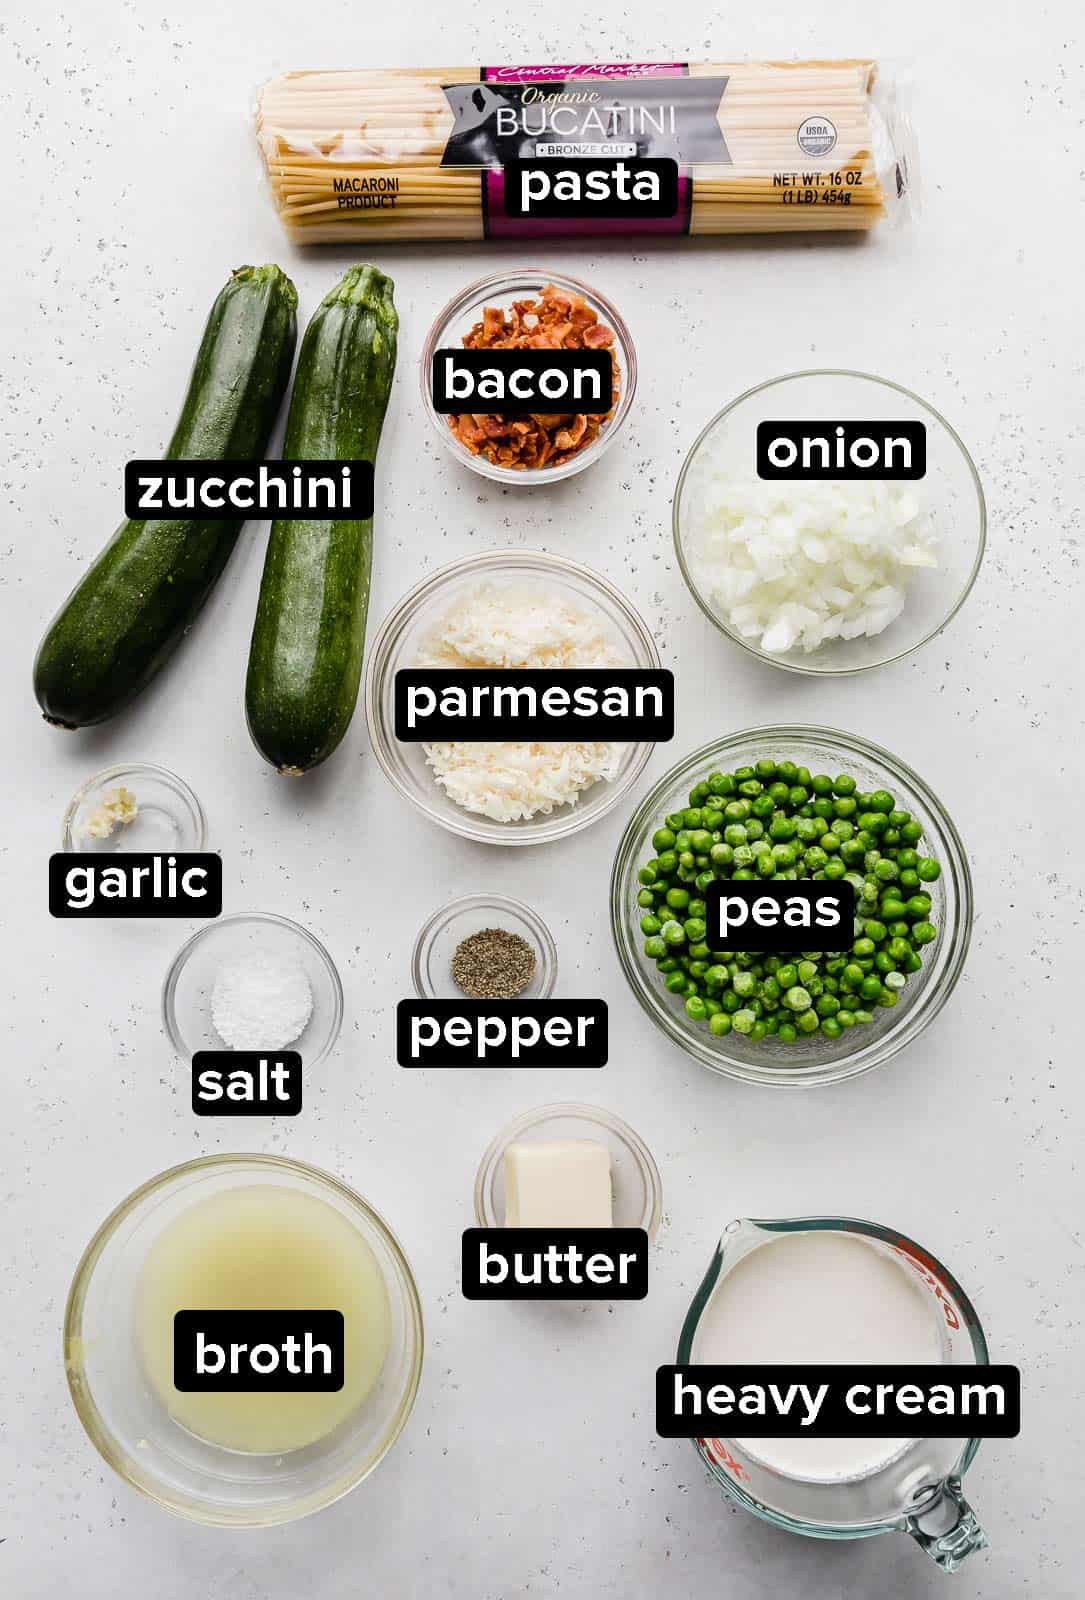 Ingredients used to make the best Pasta with Zucchini Sauce recipe on a gray background.